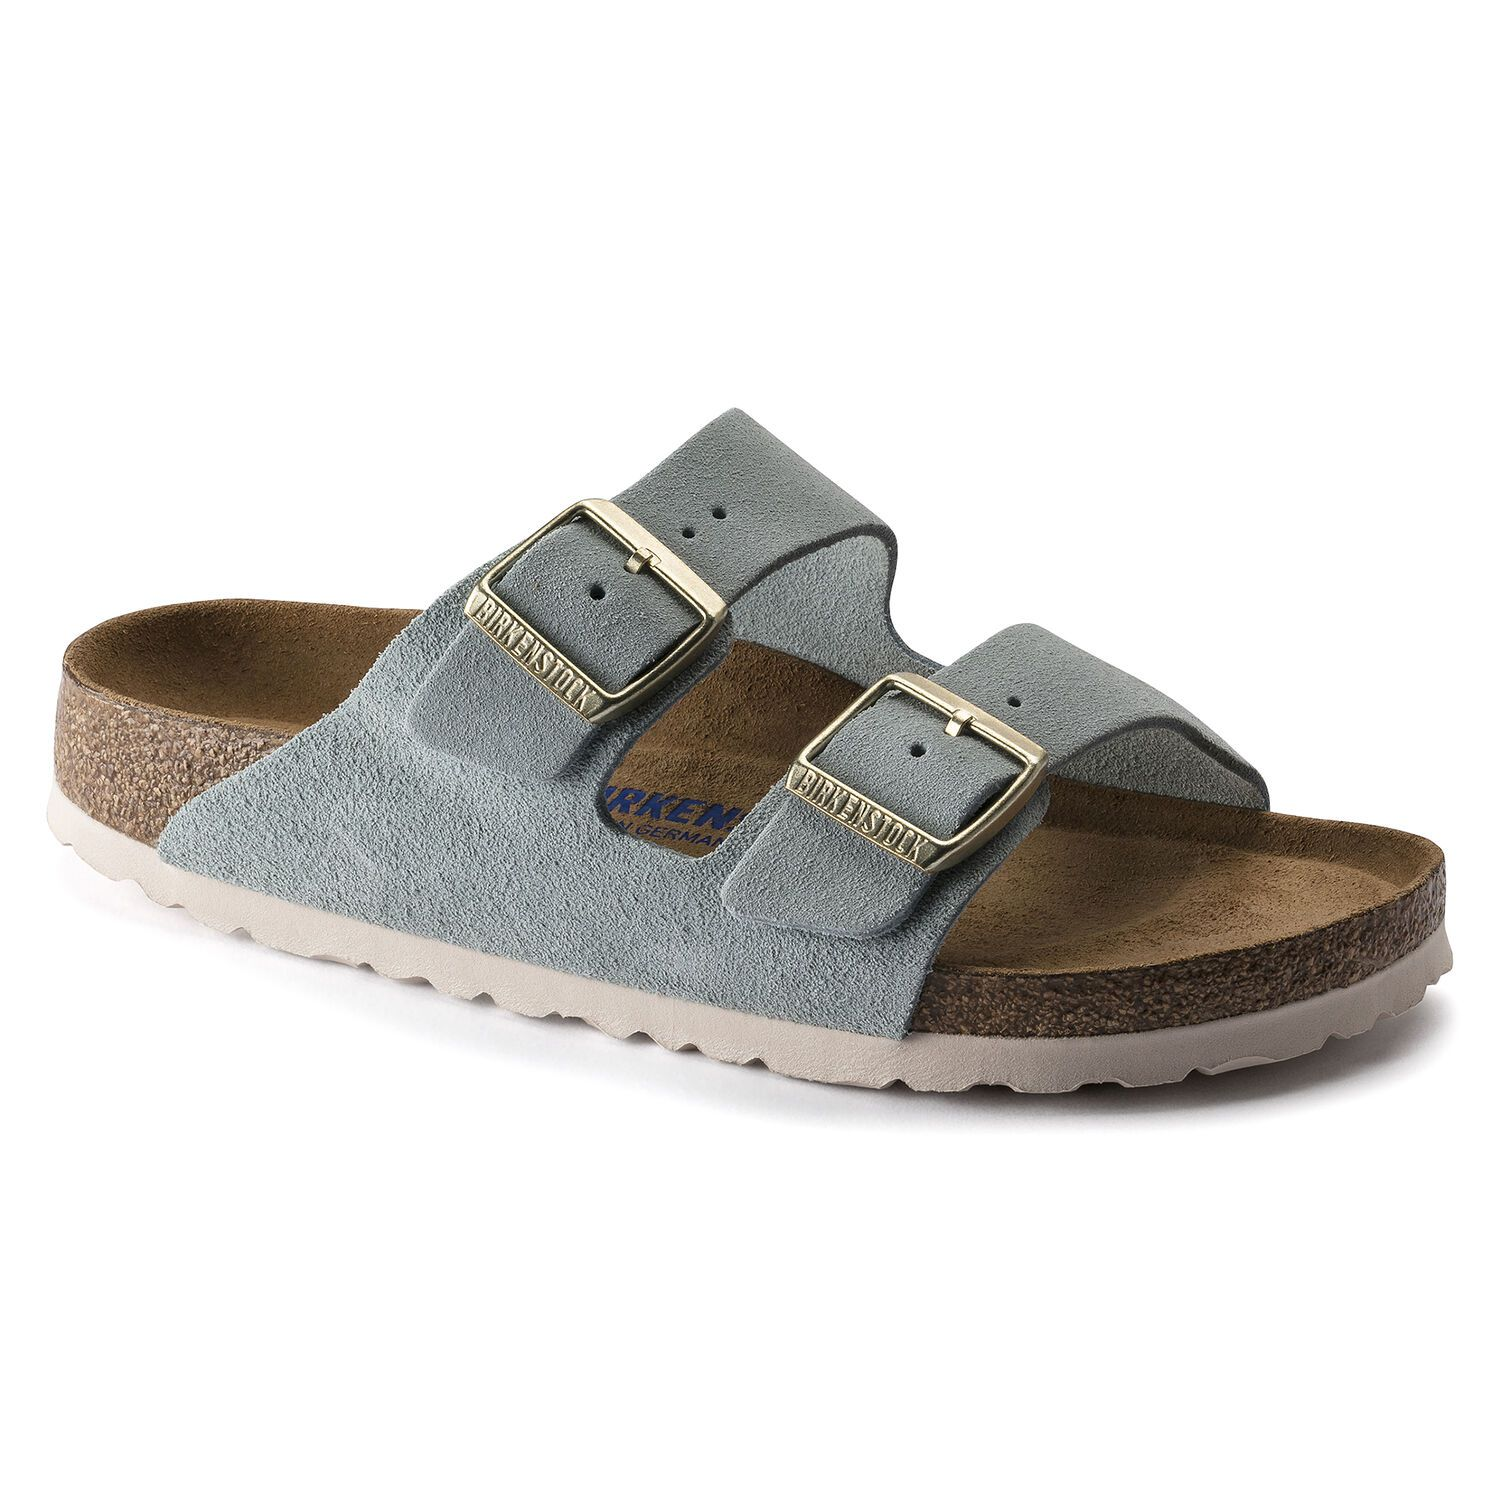 Birkenstock Arizona SFB VL Light Blue Narrow